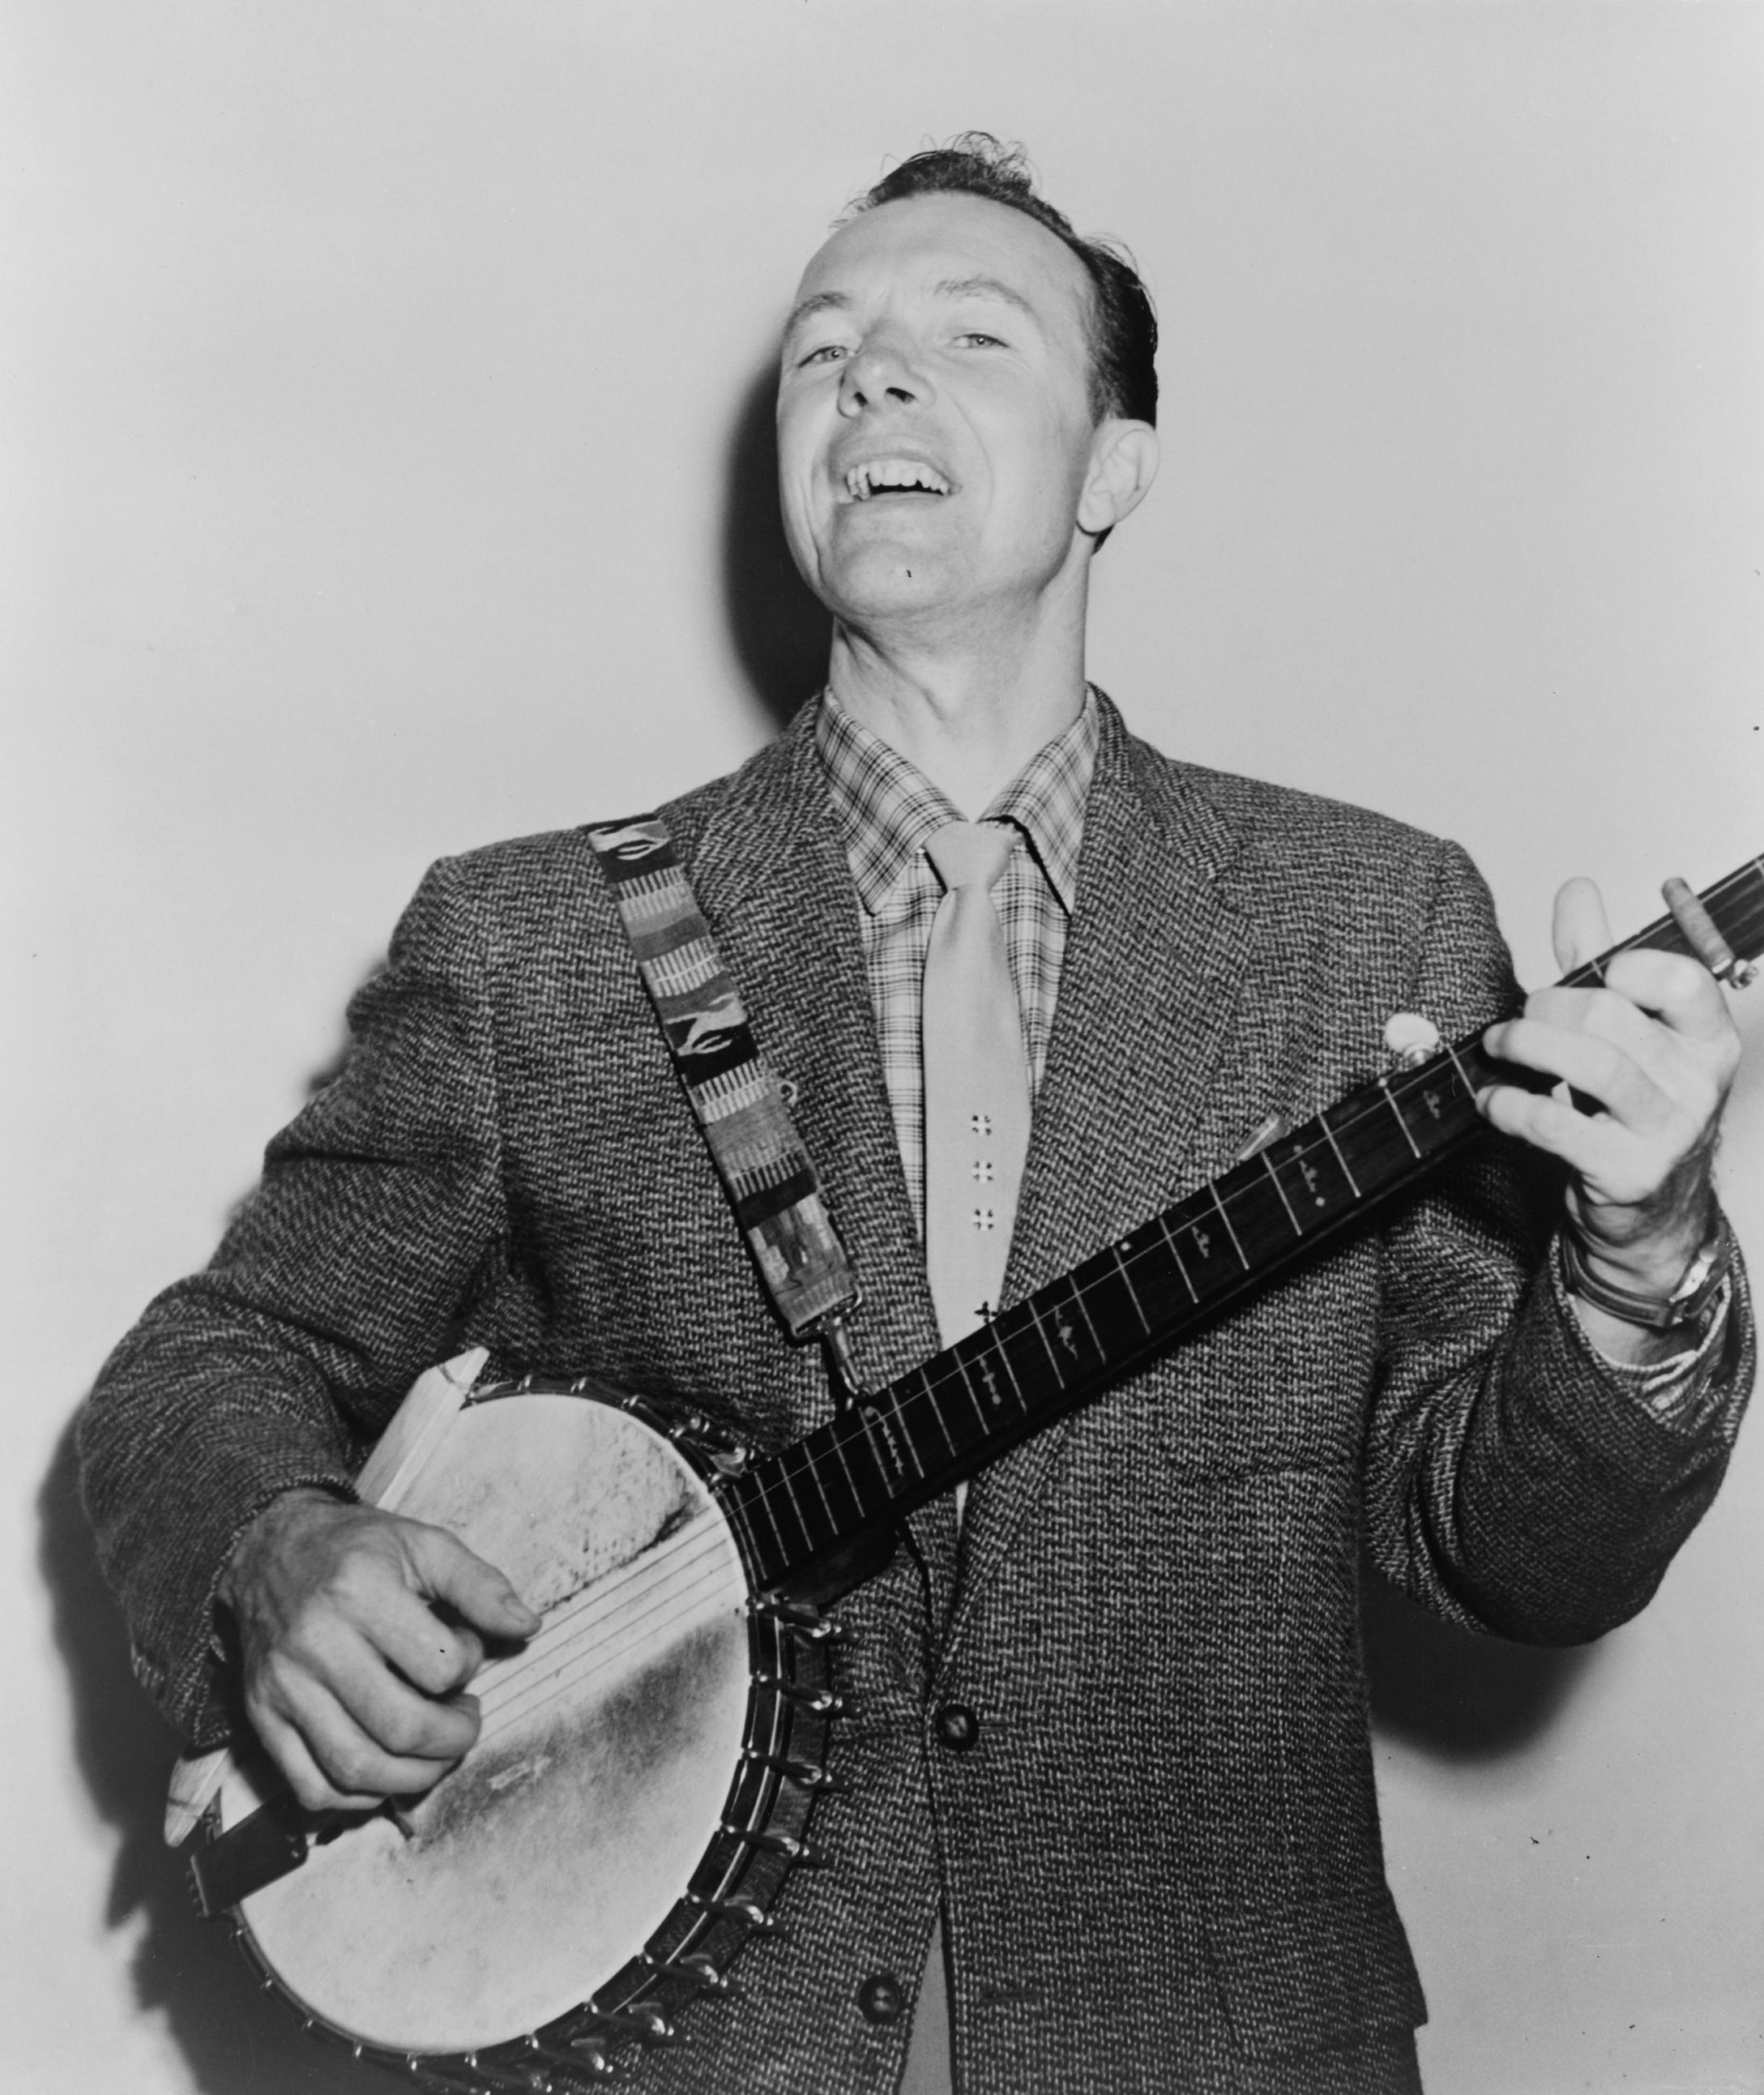 http://upload.wikimedia.org/wikipedia/commons/3/32/Pete_Seeger_NYWTS.jpg